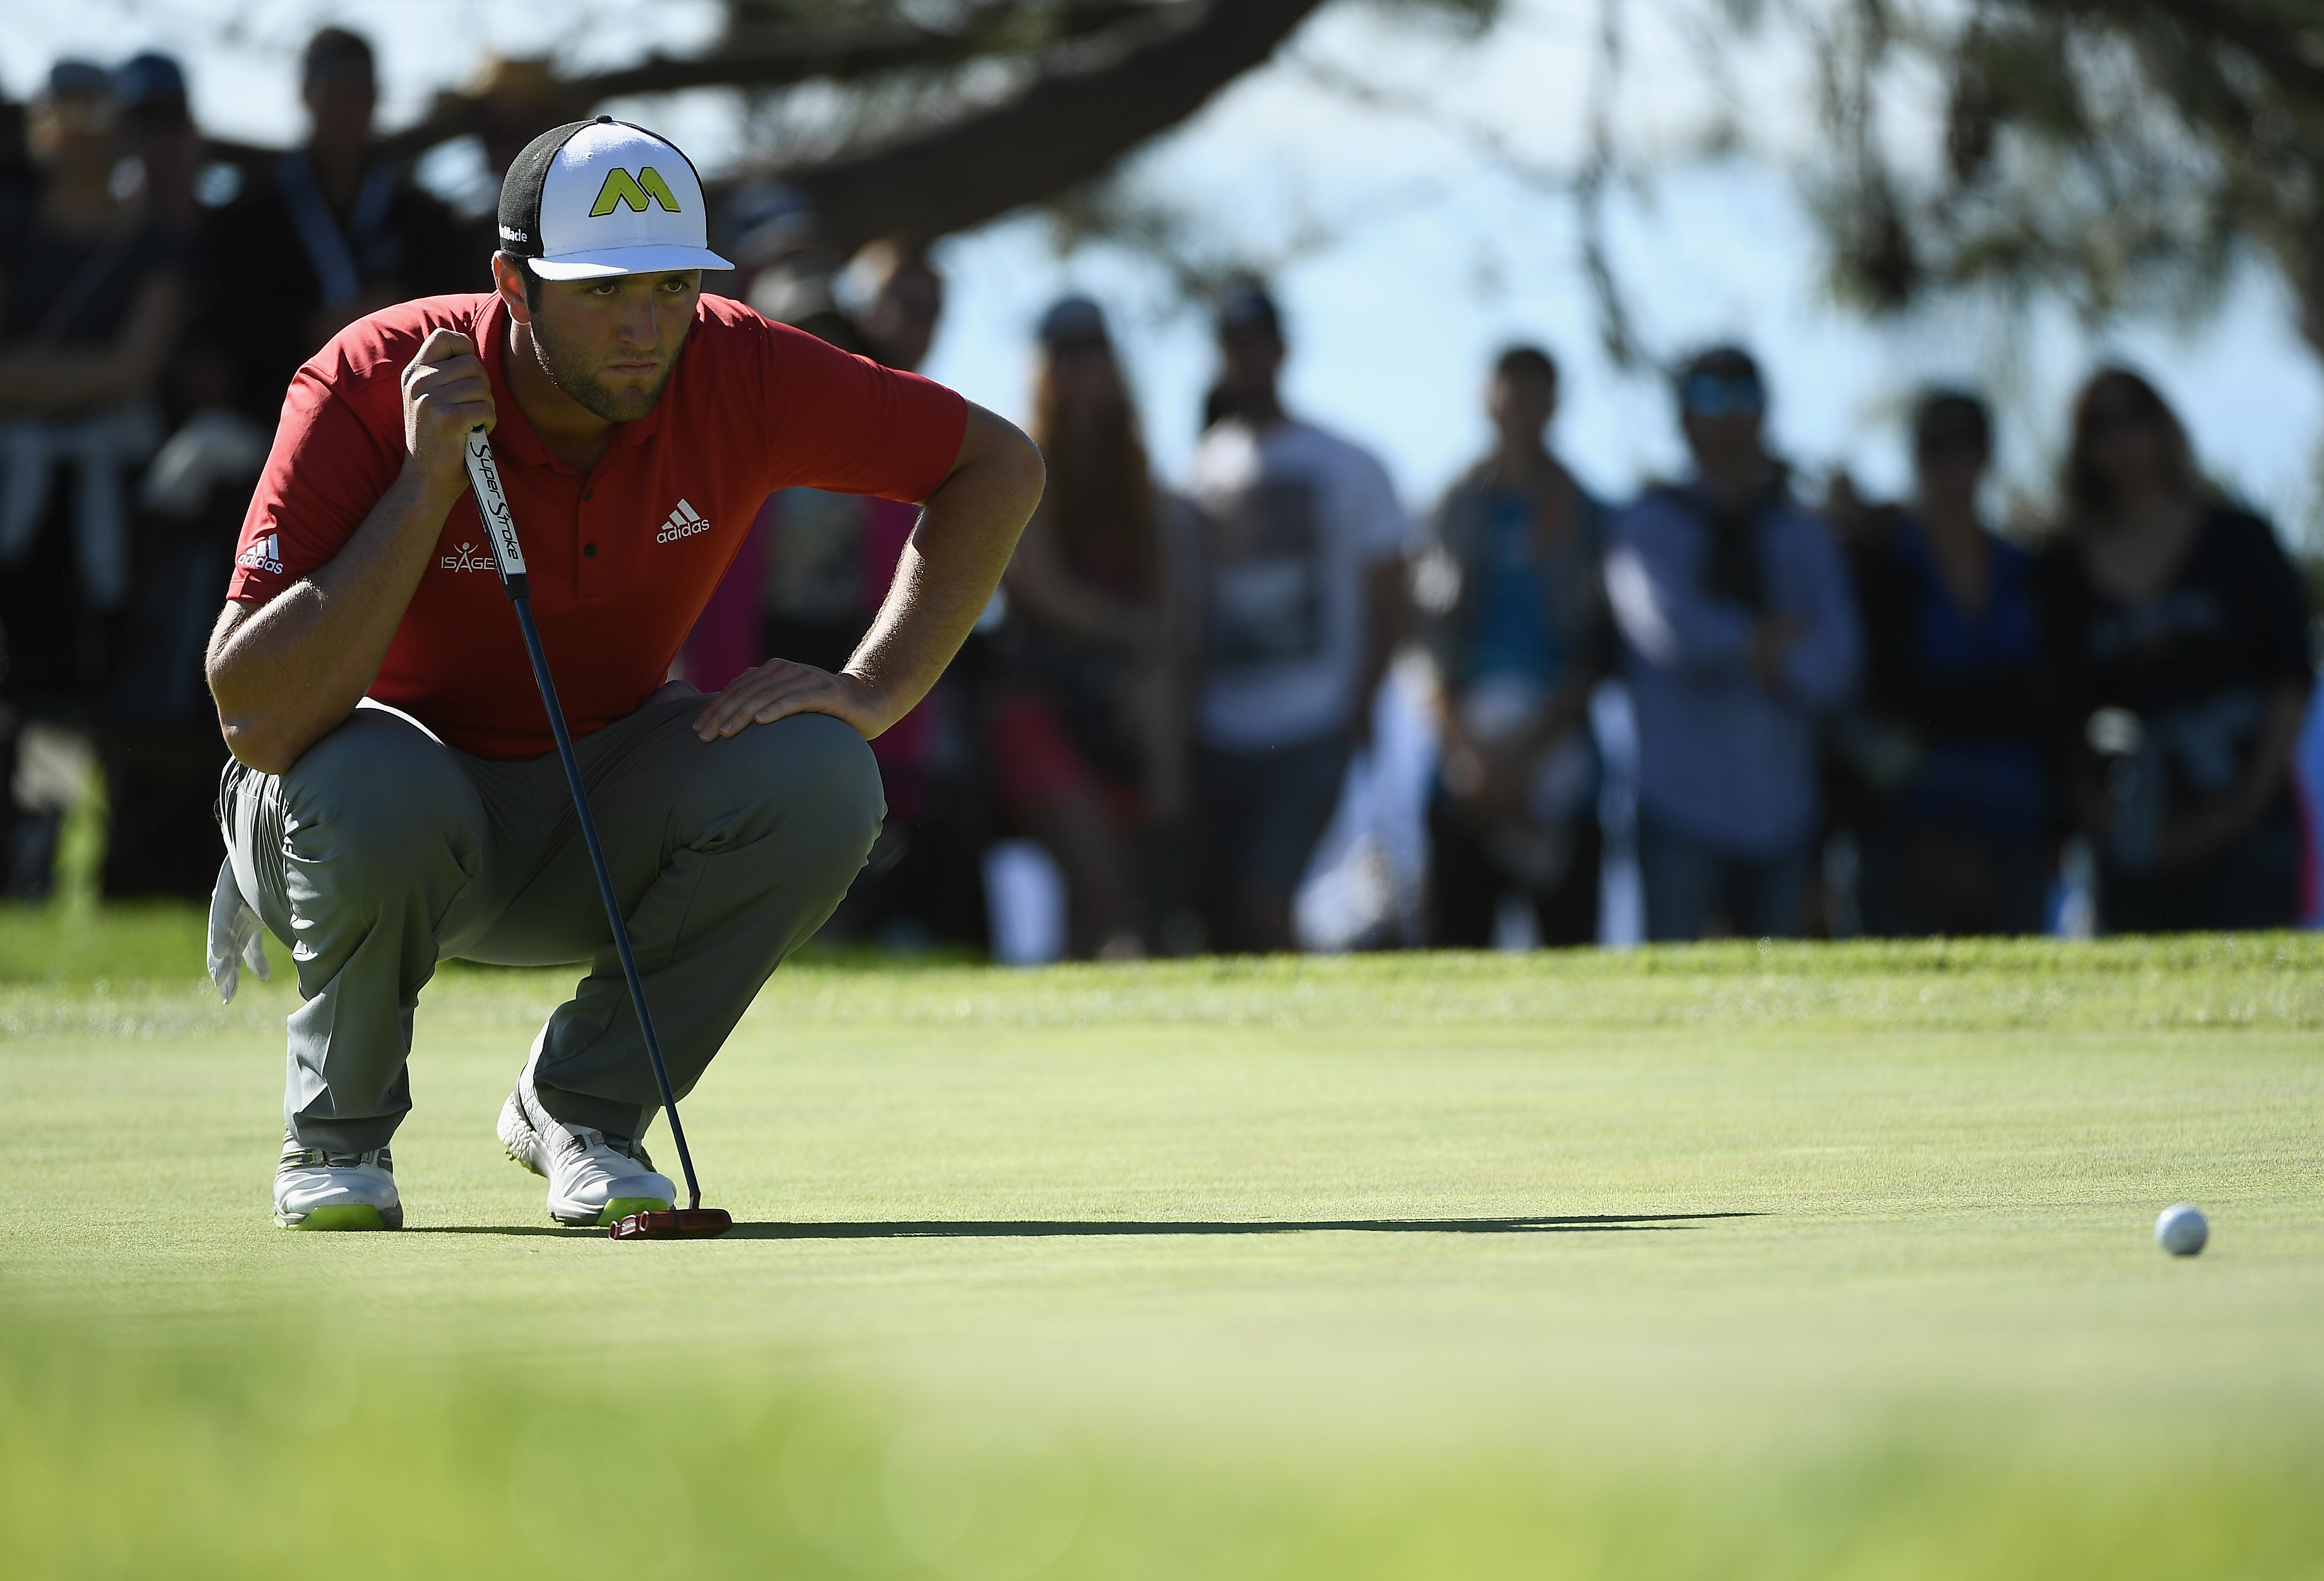 Jon Rahm earned his first career PGA Tour win Sunday at the Farmers Insurance Open. (Getty Images)